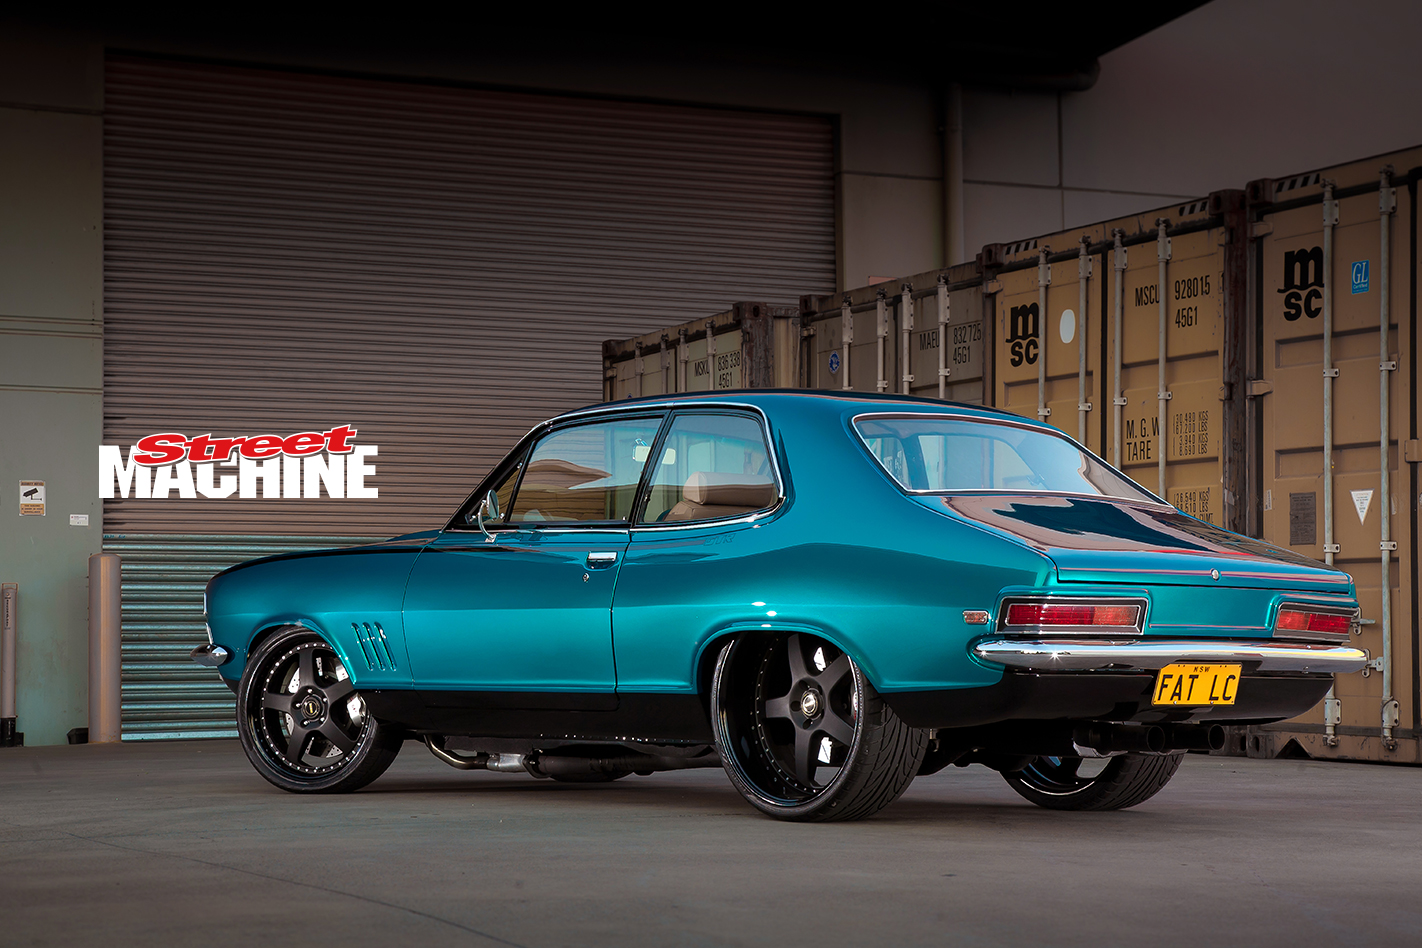 Holden LC Torana Coupe 383 Chev 14